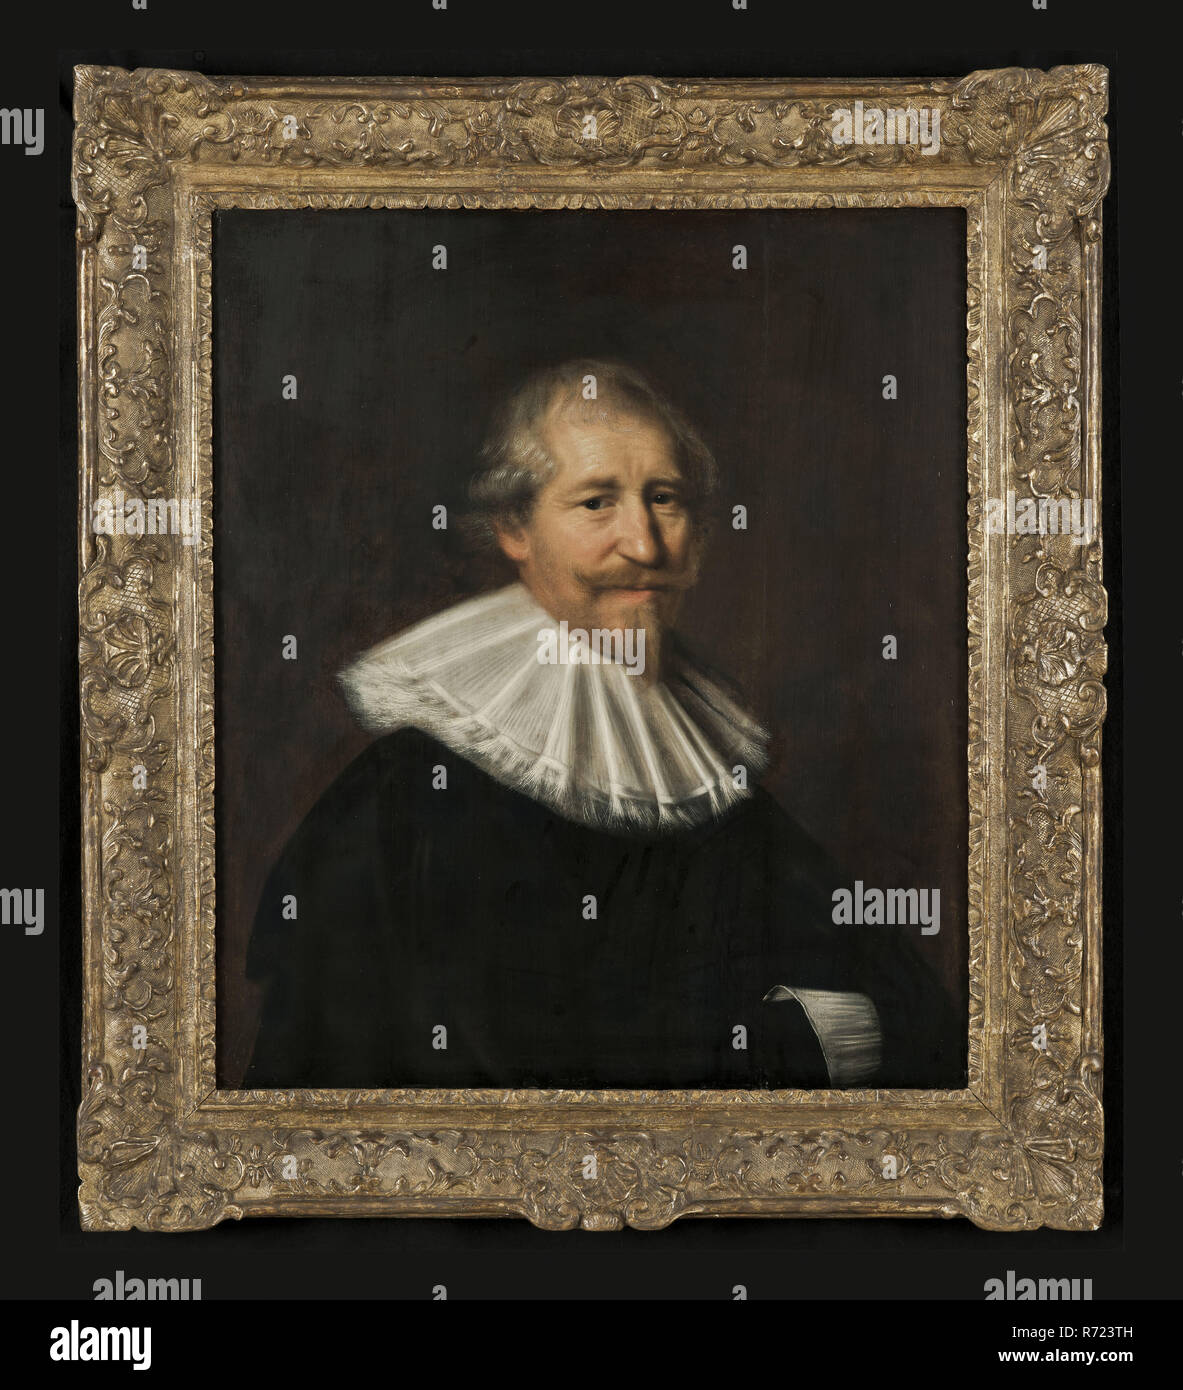 Abraham de Vries, Portrait of an unknown man, possibly the merchant Adriaen van der Tock (158485-1661), portrait painting visual material wood oil, Standing rectangular portrait of the Rotterdam merchant Adriaen van der Tock (friend of Abraham de Vries and assistant of Johan van der Veeken) previously identified as mr Hendrik Rosa ( Roos) secretary of Rotterdam Half-way to the right. Mustache goatee flat pleated large white collar white cuff of right arm visible dark garment. Reverse: flat parquet Rotterdam Hendrik Roos Hendrick Rosa Abraham van der Tuck Abraham of the Tocq régence - Stock Image